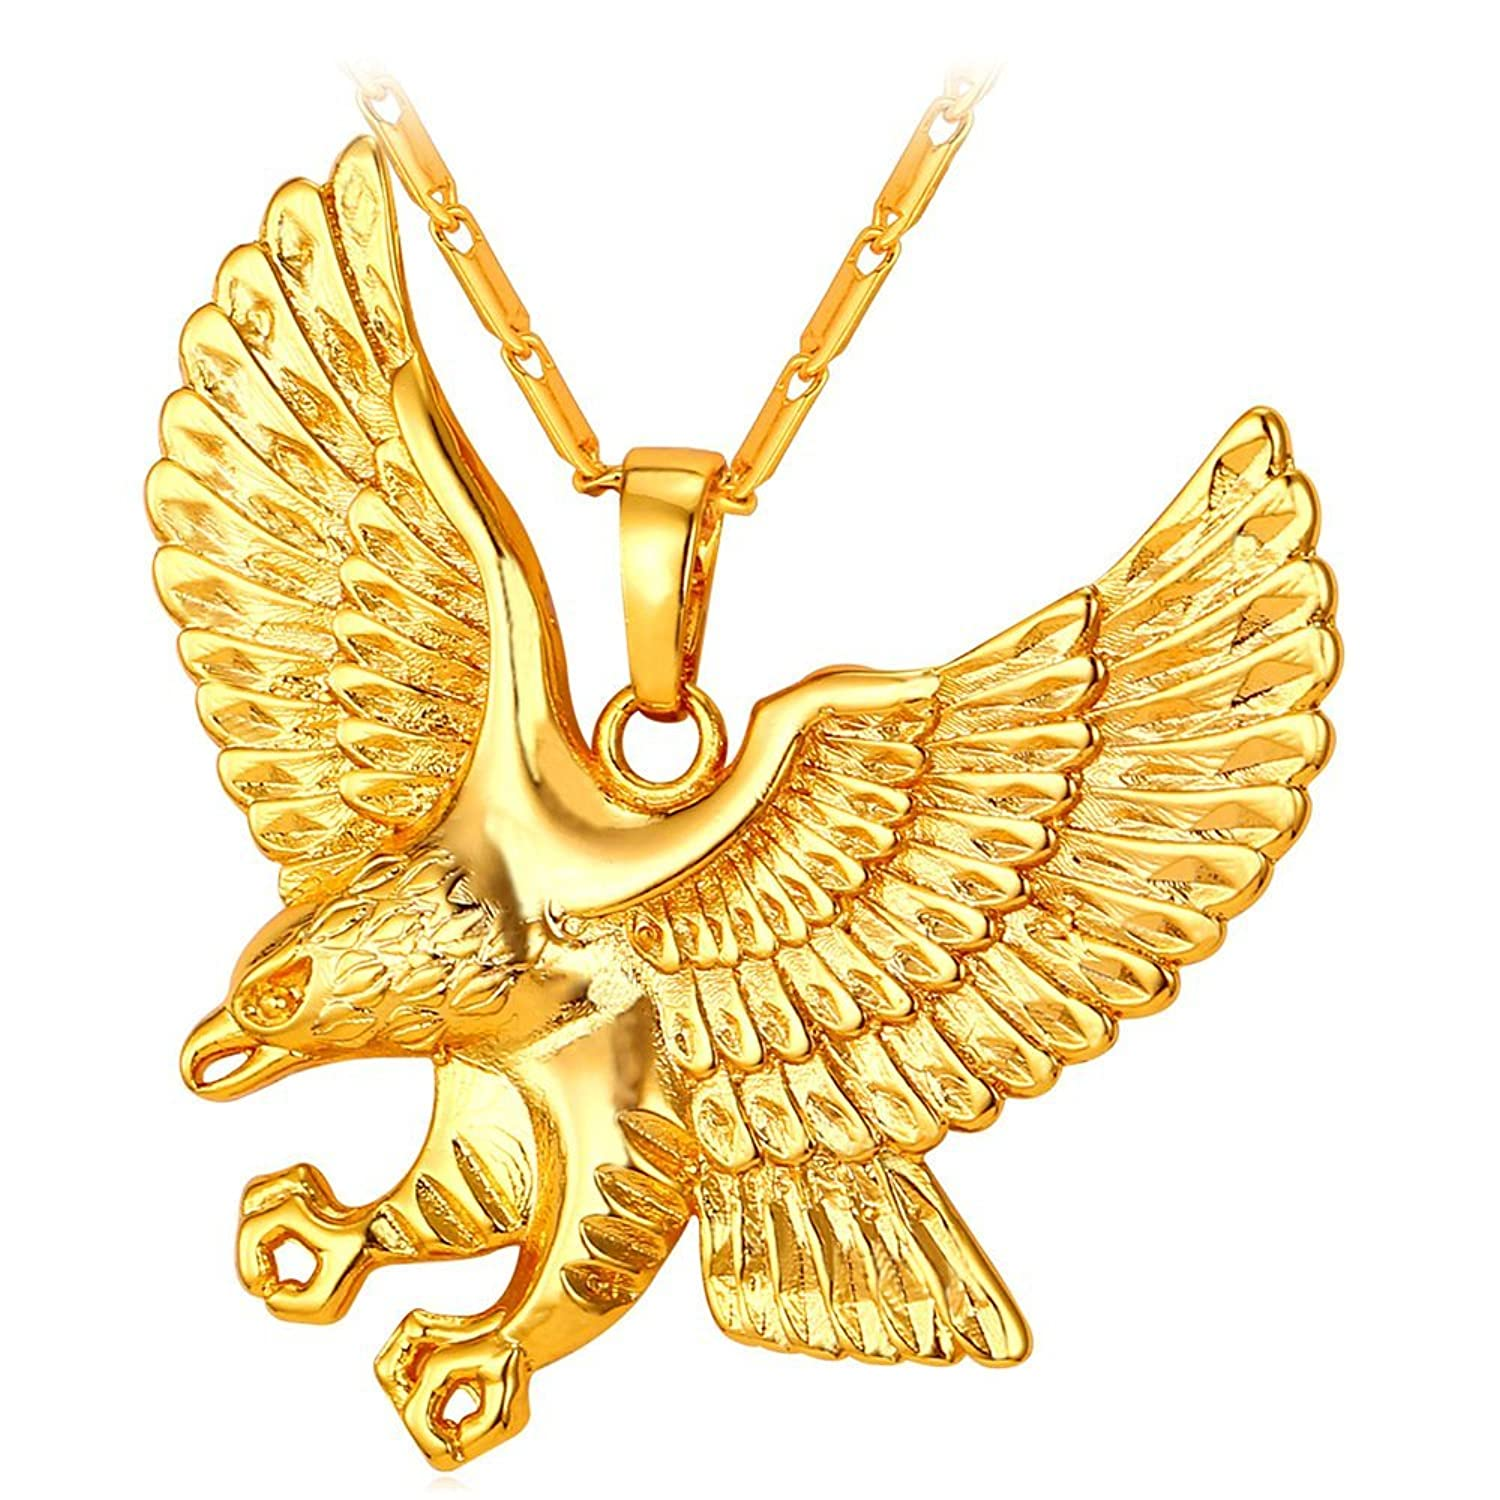 gold pendant products fantasy world eagle jewelry overlay